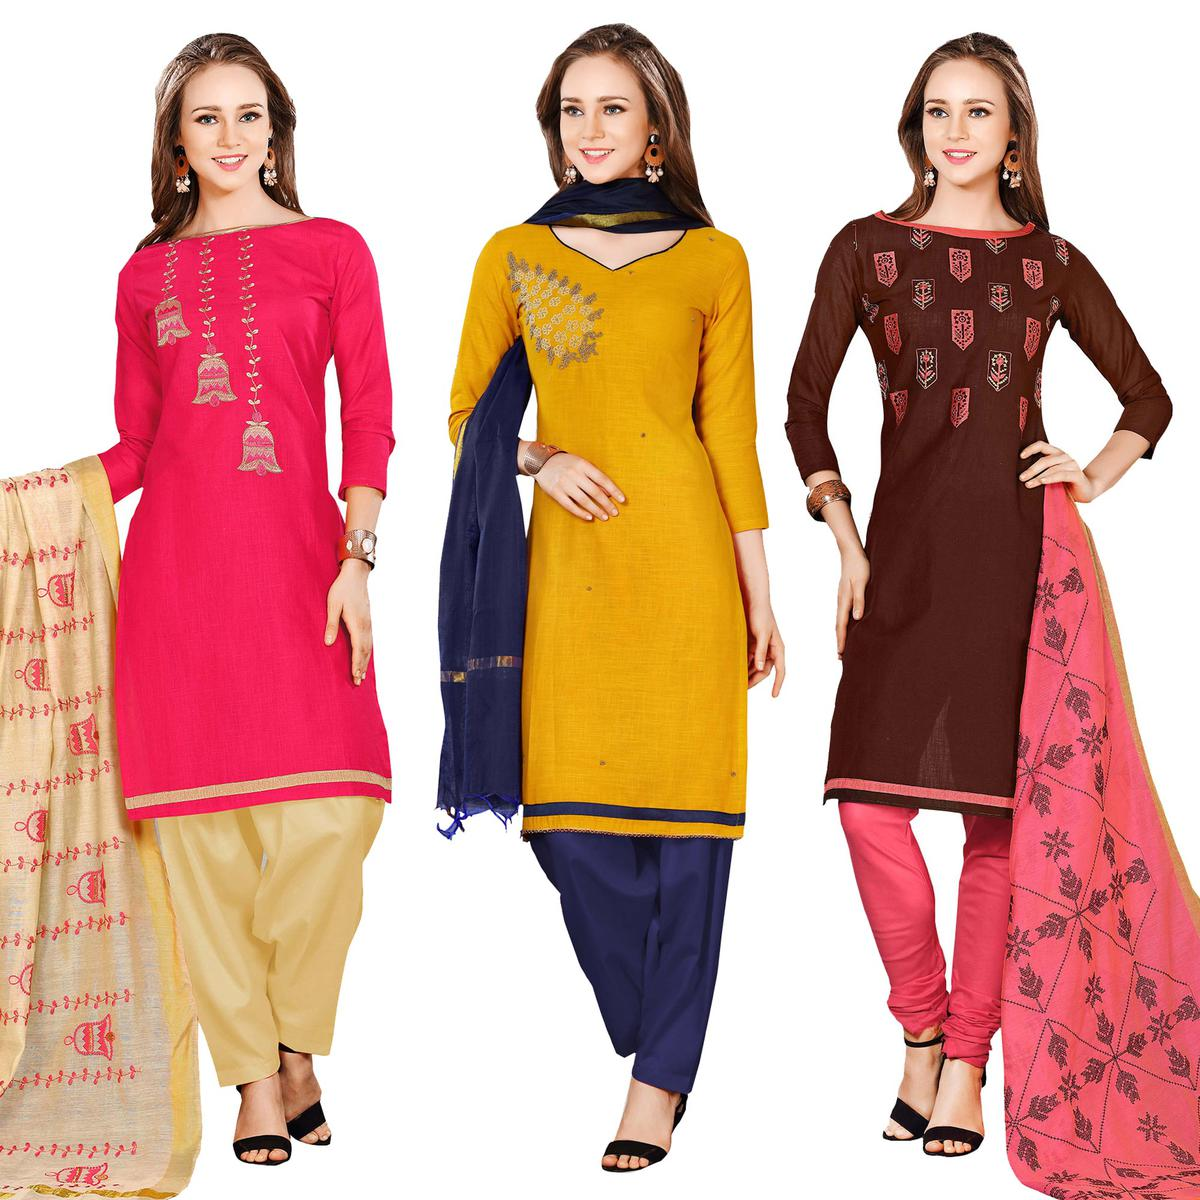 926e0a872c Buy Charming Embroidered Chanderi Cotton Dress Materials - Pack of 3 for womens  online India